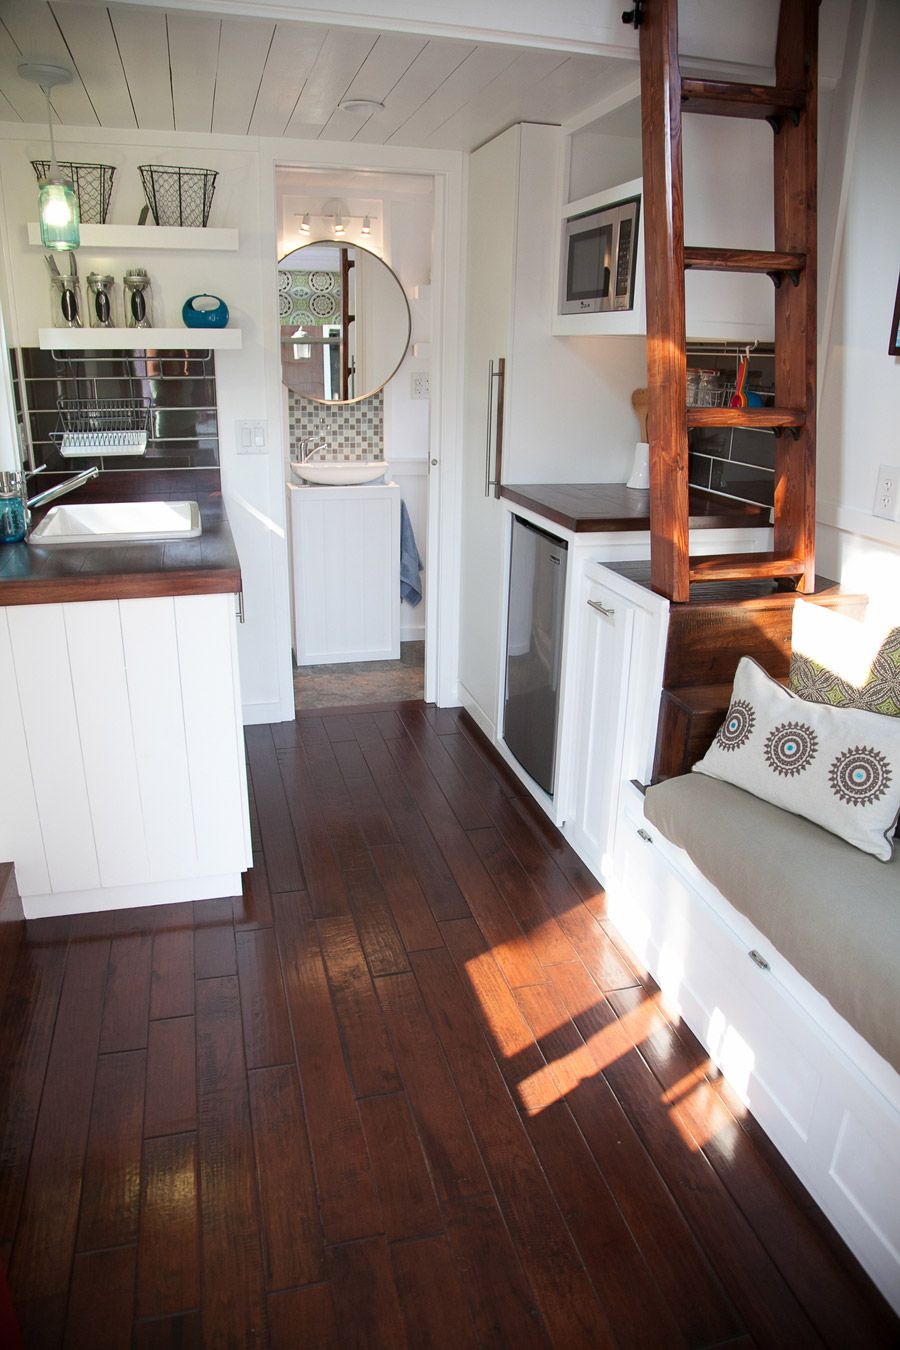 A Square Feet Lofted Tiny House On Wheels In Omaha Nebraska